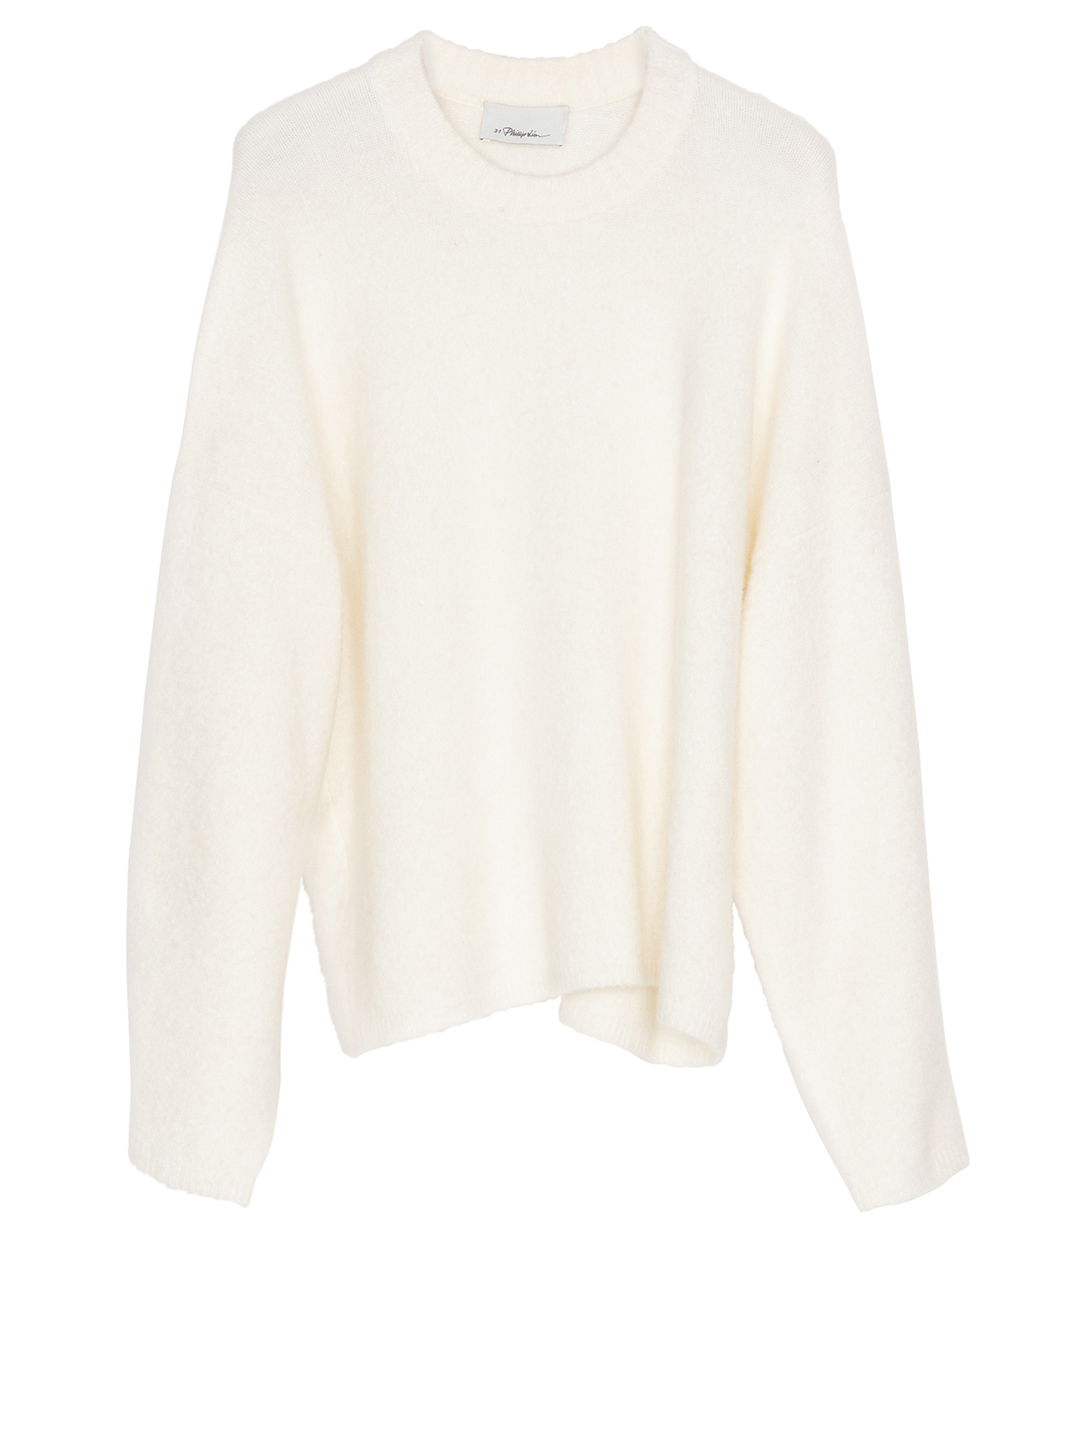 3.1 PHILLIP LIM Wool And Alpaca Lofty Sweater Women's White